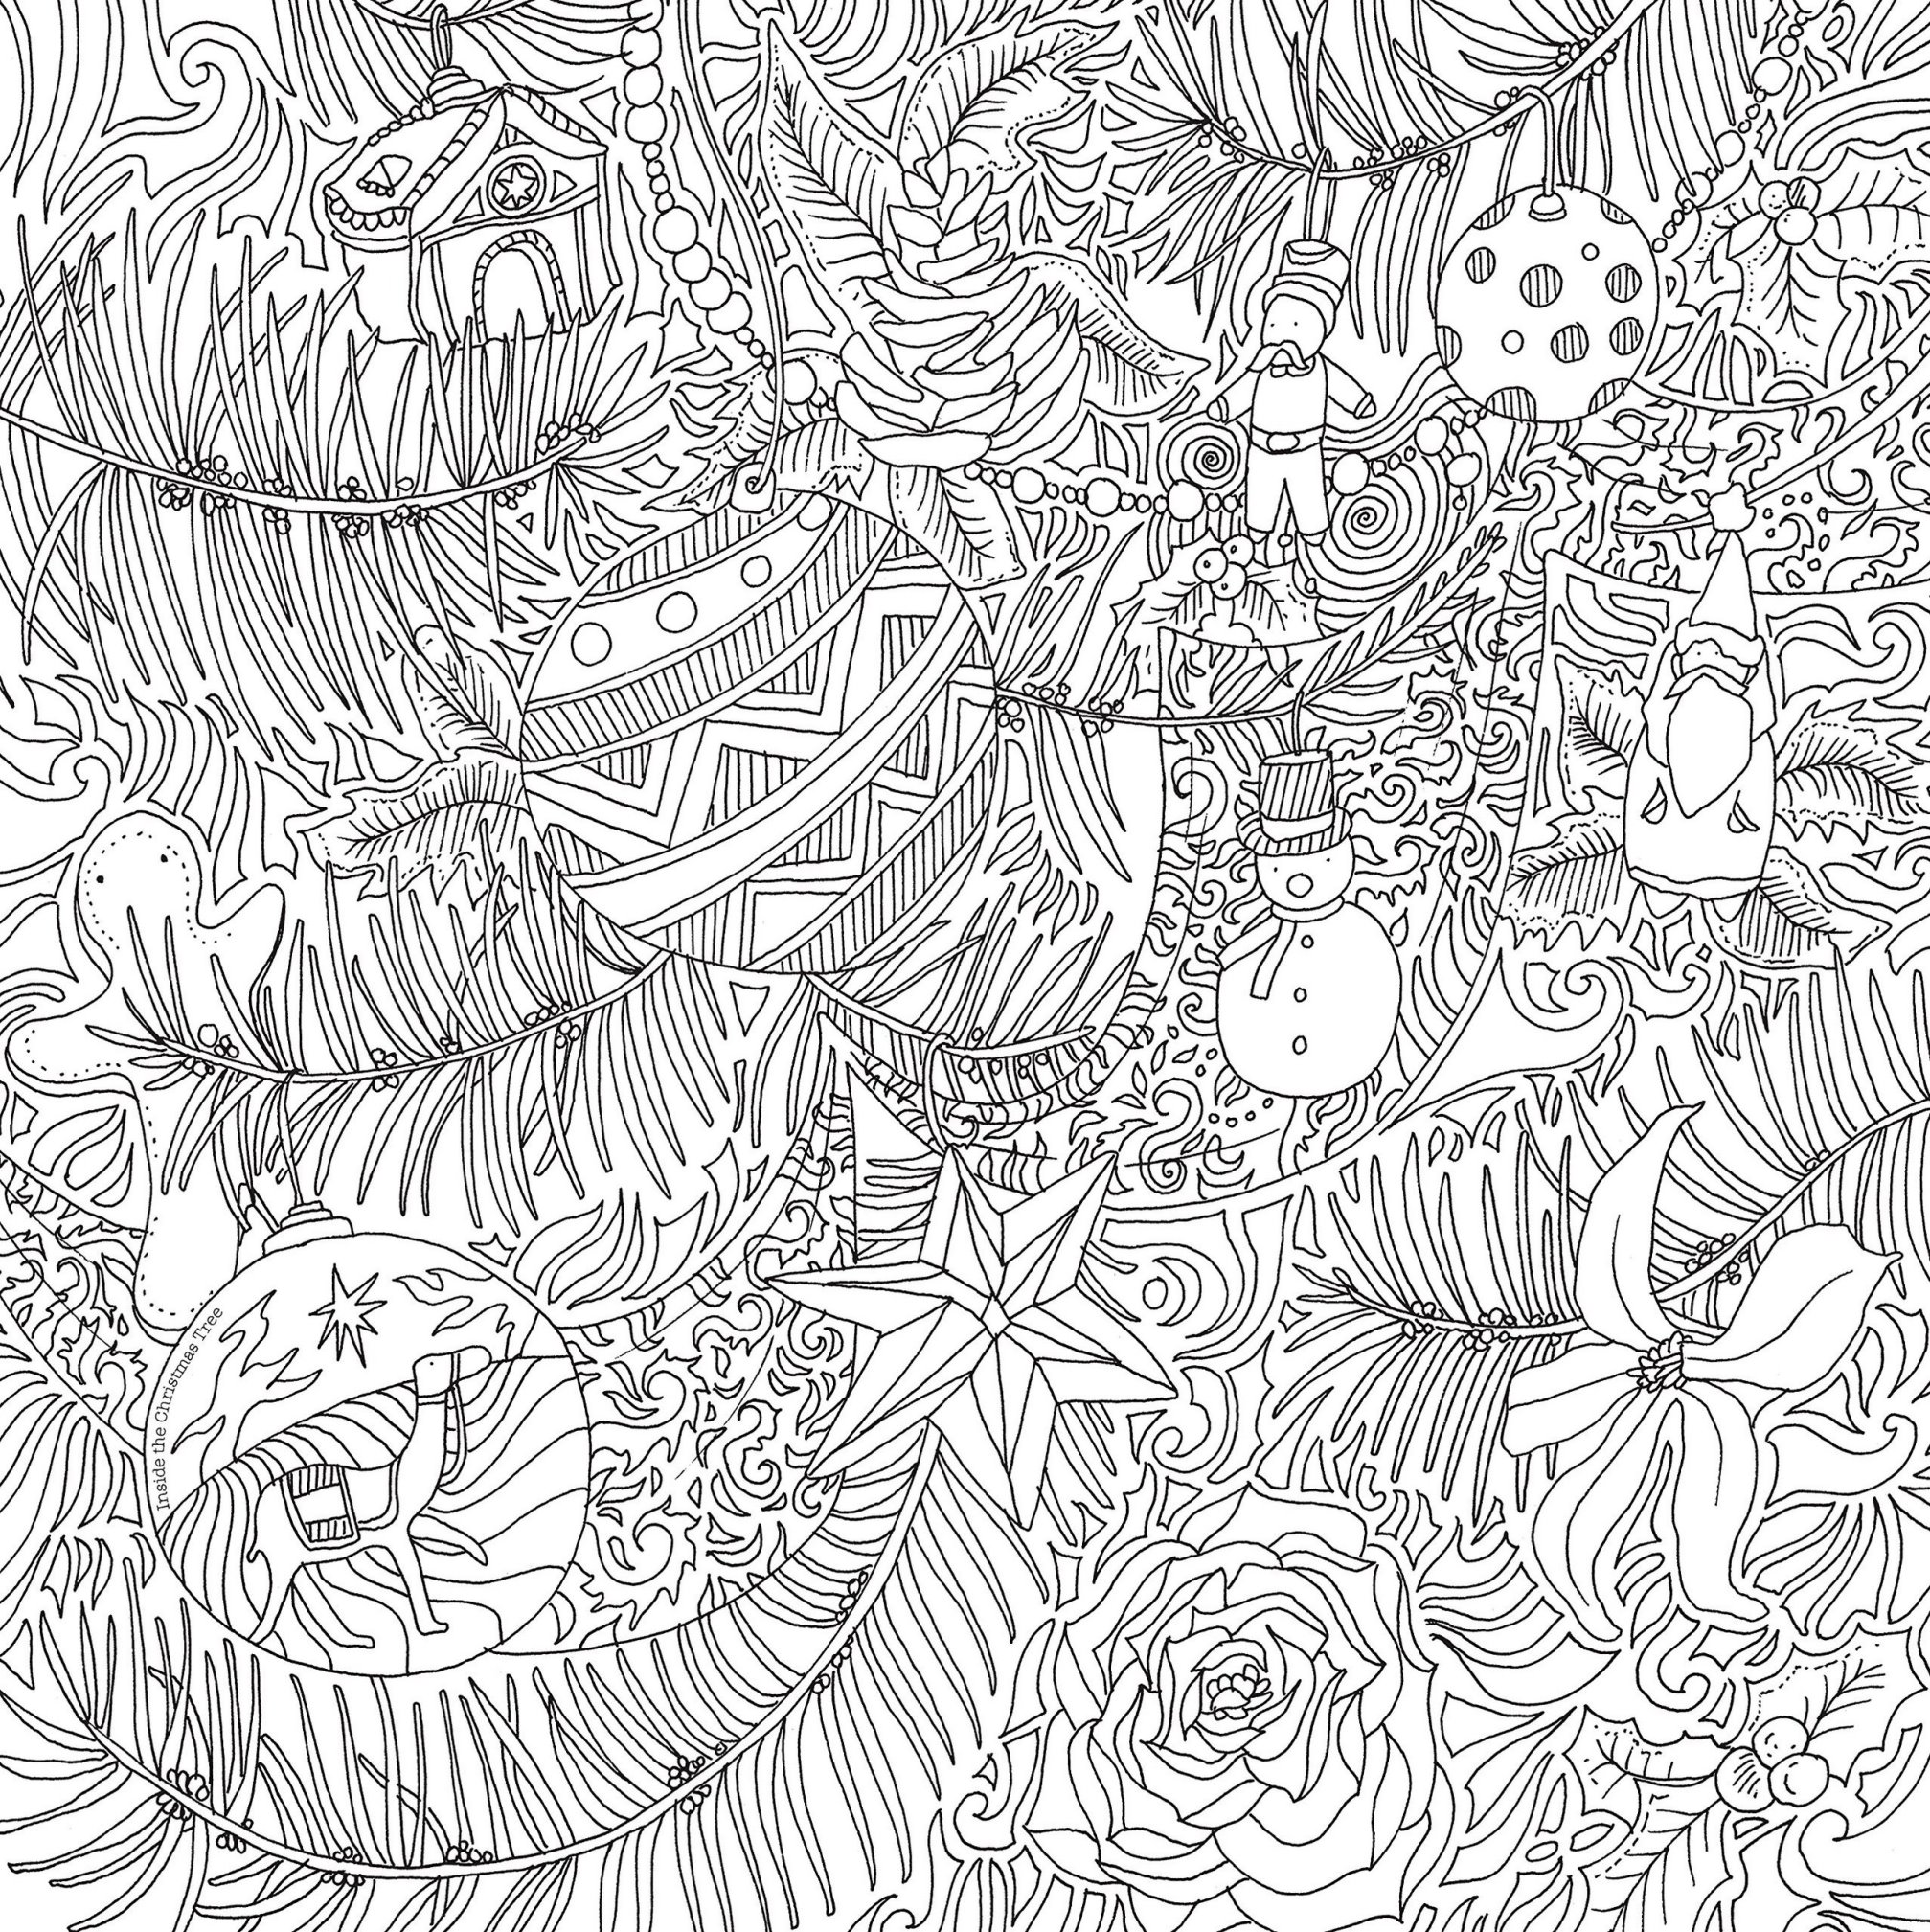 Lizzie-Mary-Magical-Christmas-Coloring-Printable